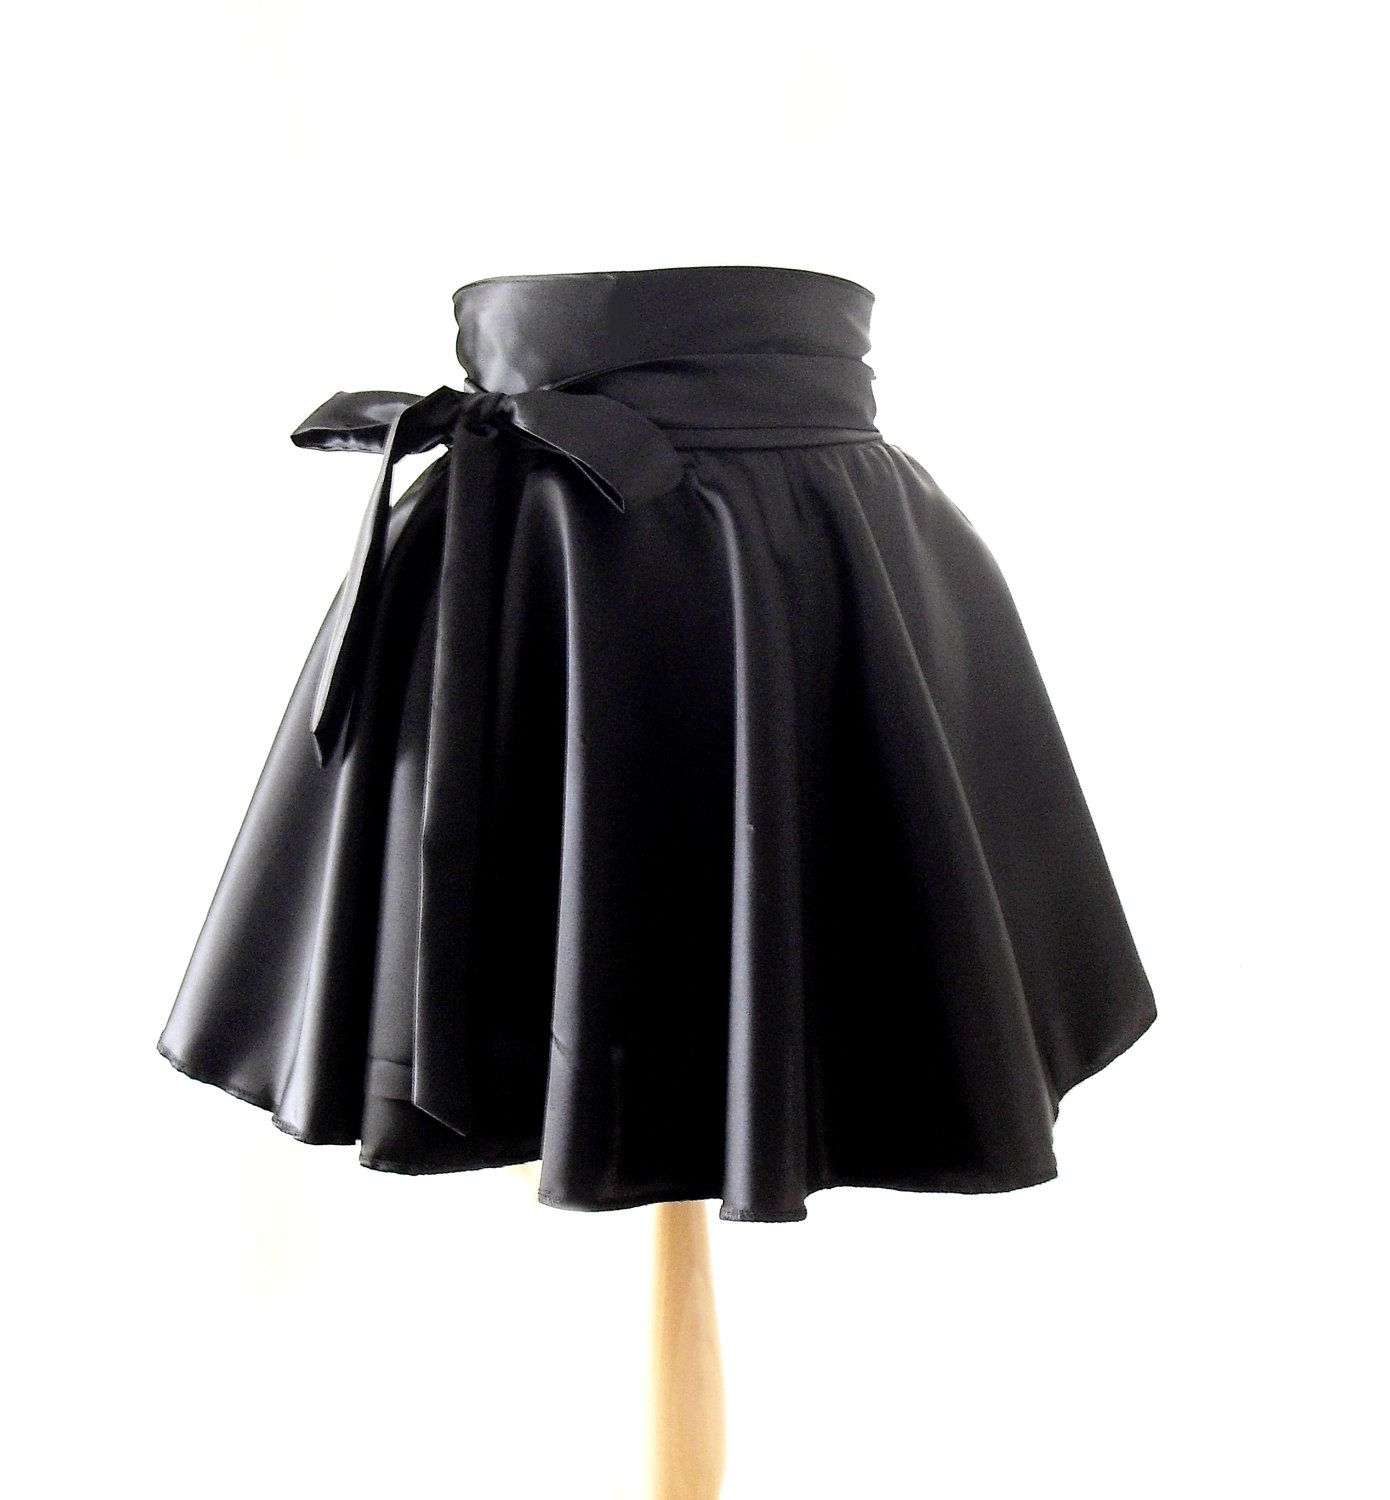 Wet Look Skater Skirt, High Waisted Skirt, Satin Rockabilly Skirt ...